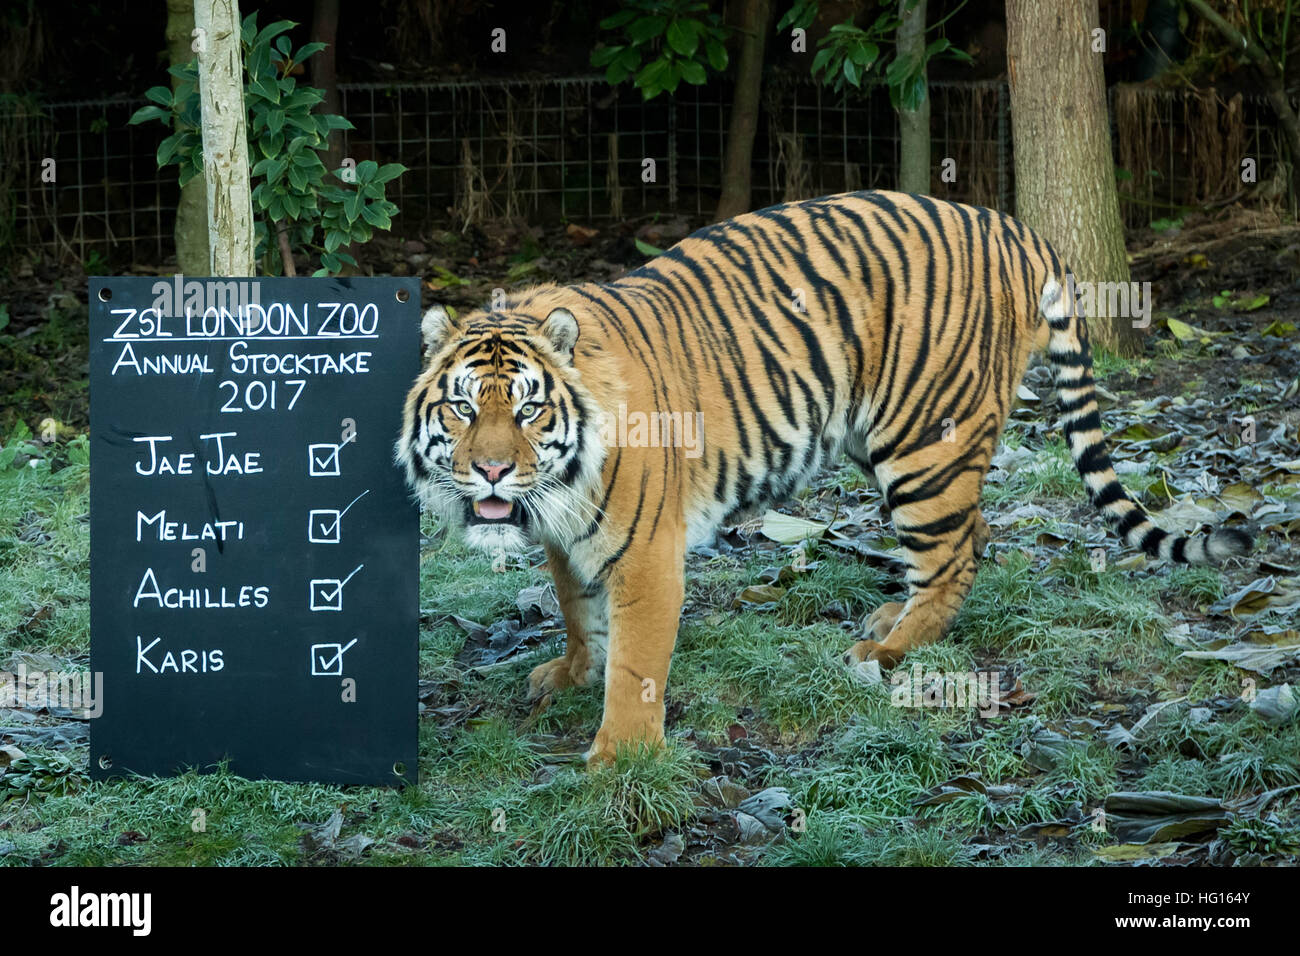 London, UK. 3rd January, 2017. Sumatran tigers. London Zoo (ZSL) Annual Animal Stocktake performed every January - Stock Image